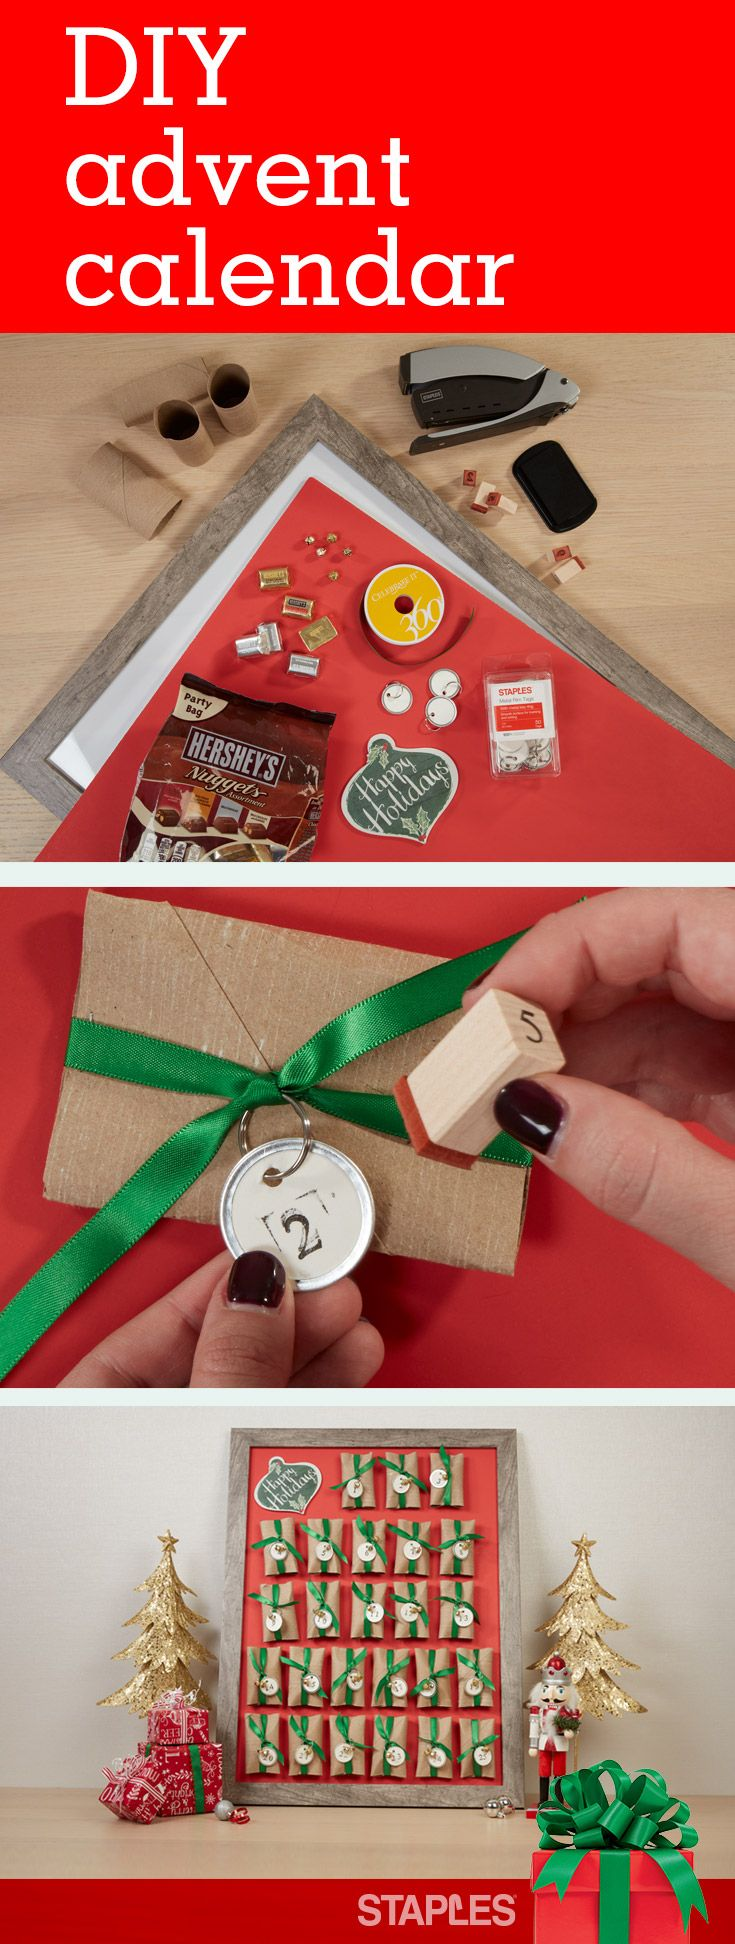 Make counting down to the holidays even more fun with this interactive idea for your home or office. This festive, easy DIY advent calendar and its daily treats are sure to make you a holiday success and spread cheer. Check out the items you'll need.